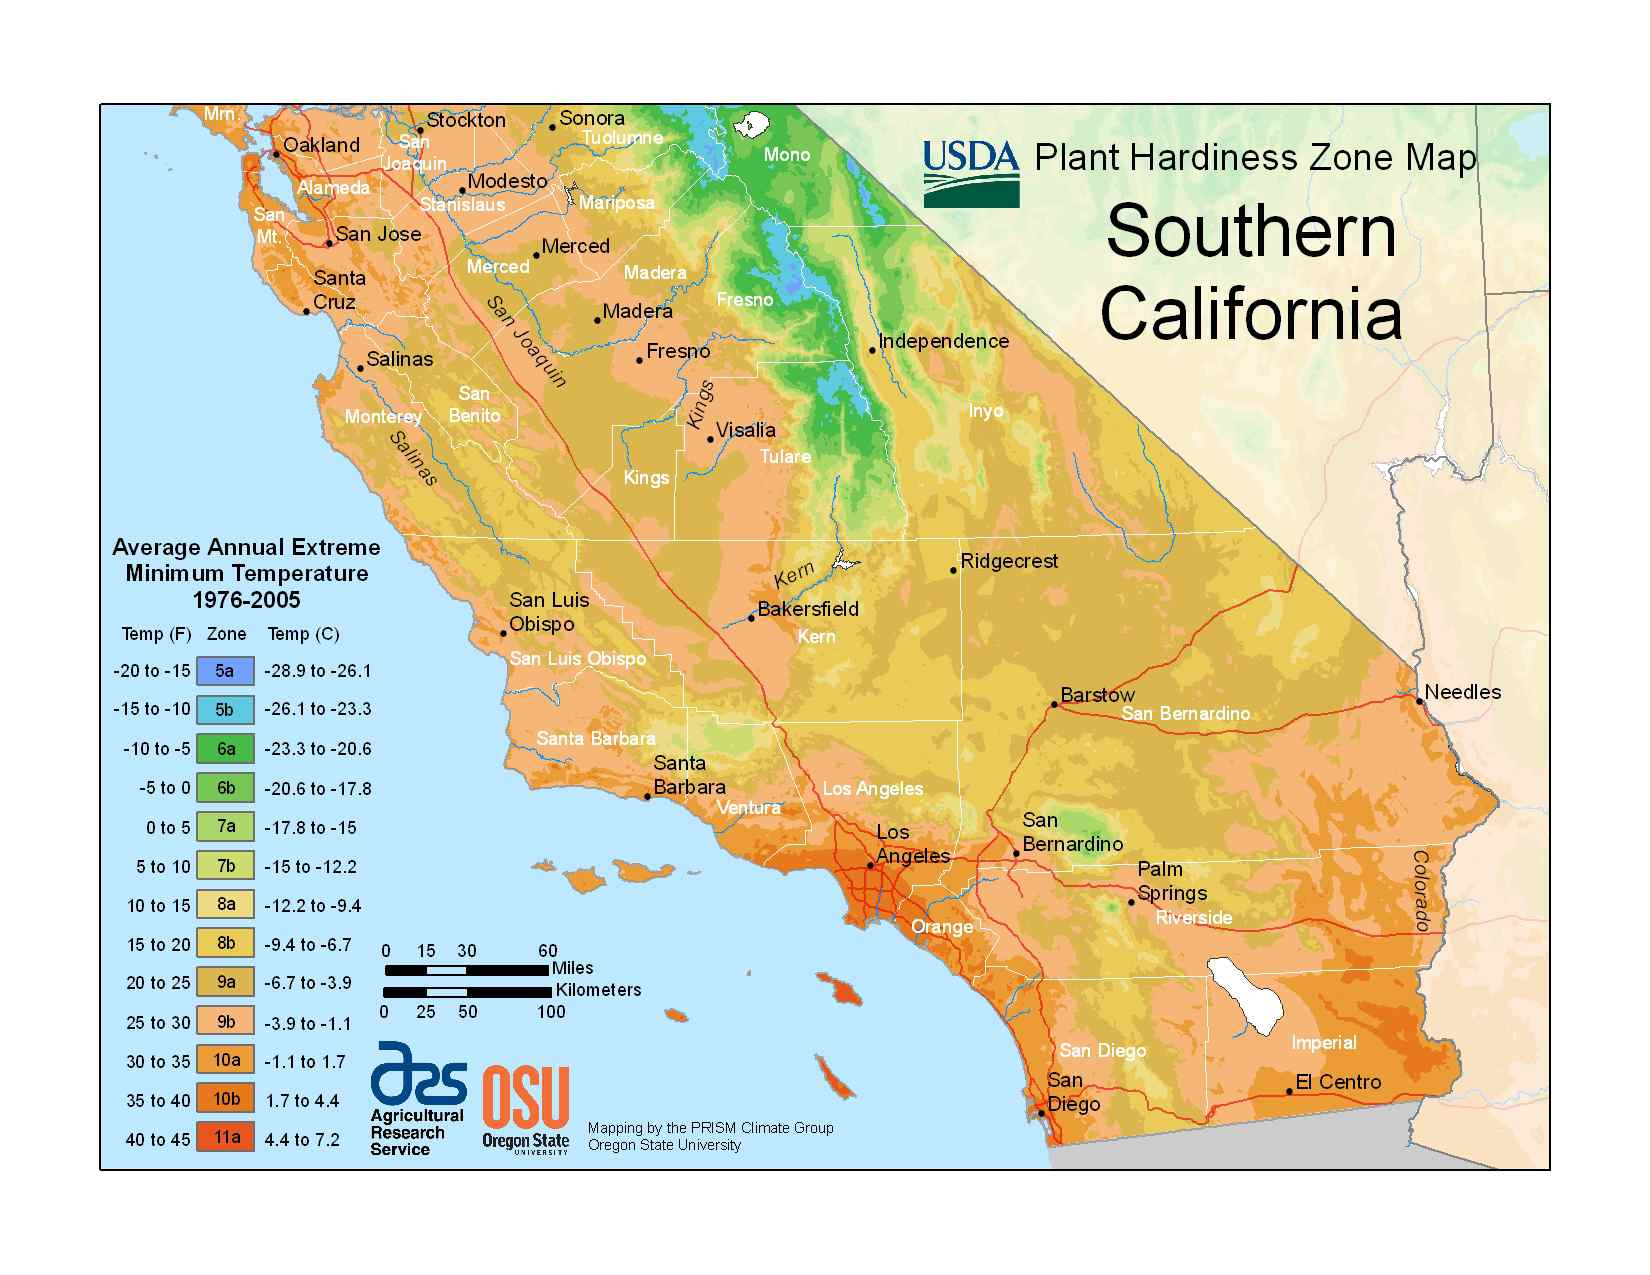 State Maps Of Usda Plant Hardiness Zones